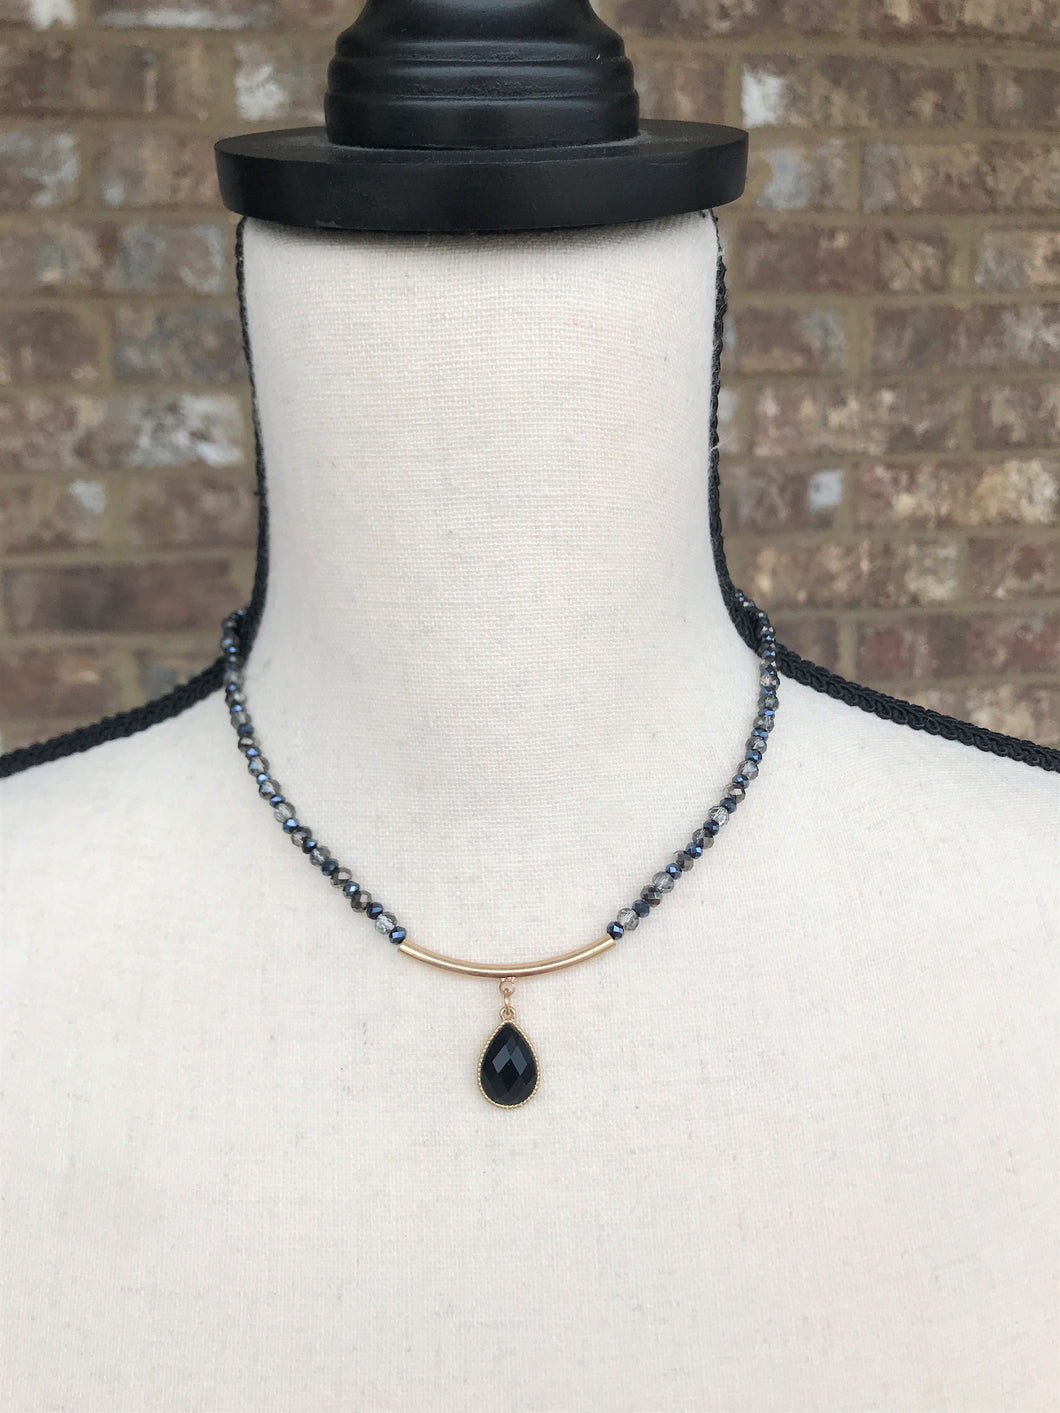 Black Teardrop Choker